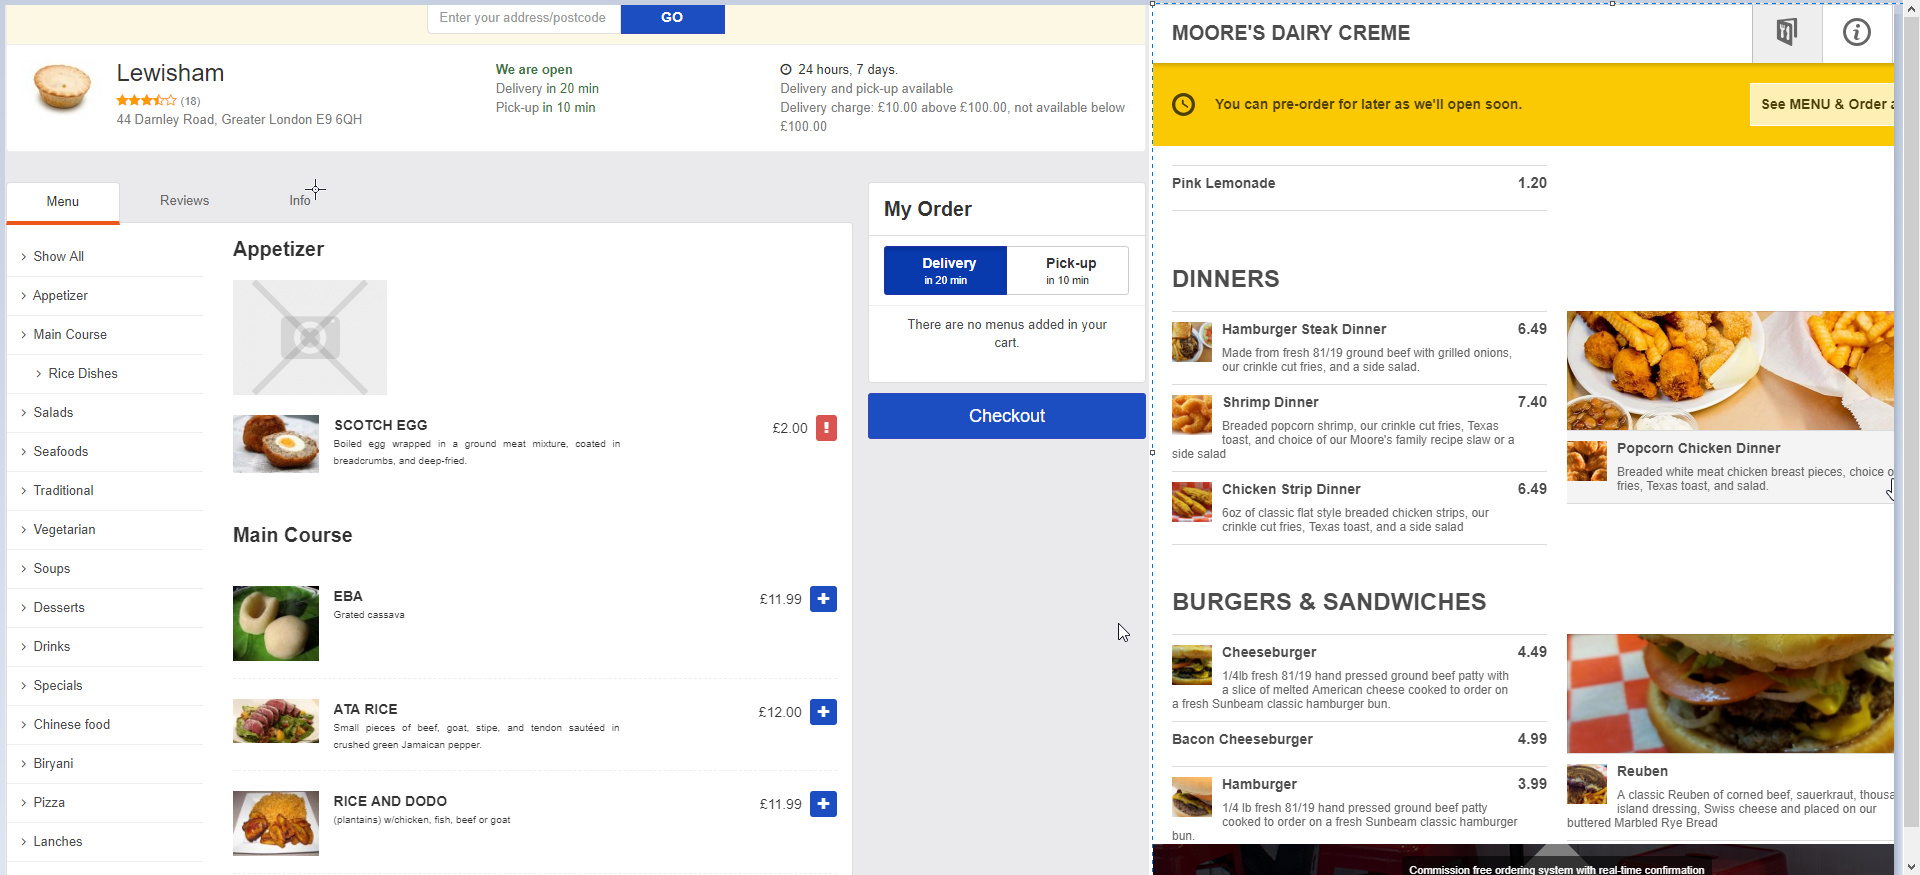 Online Ordering Apps Discussion - General - SambaClub Forum